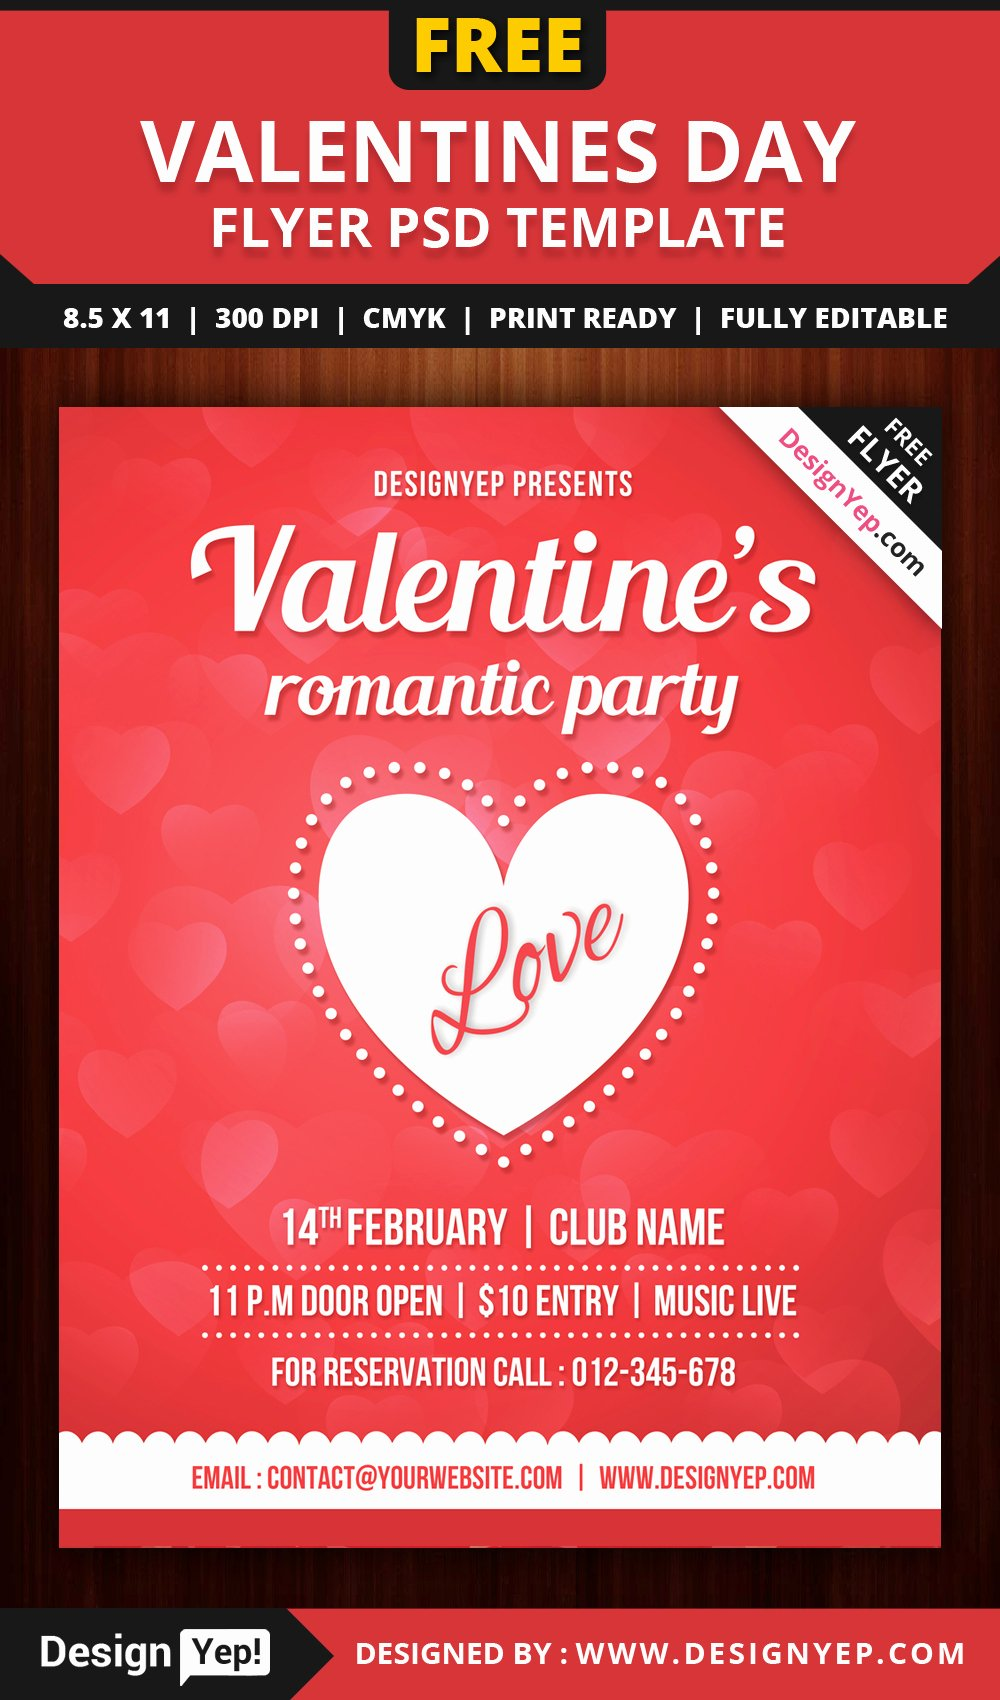 Free Party Flyer Templates Elegant Free Valentines Party Flyer Template Psd Designyep